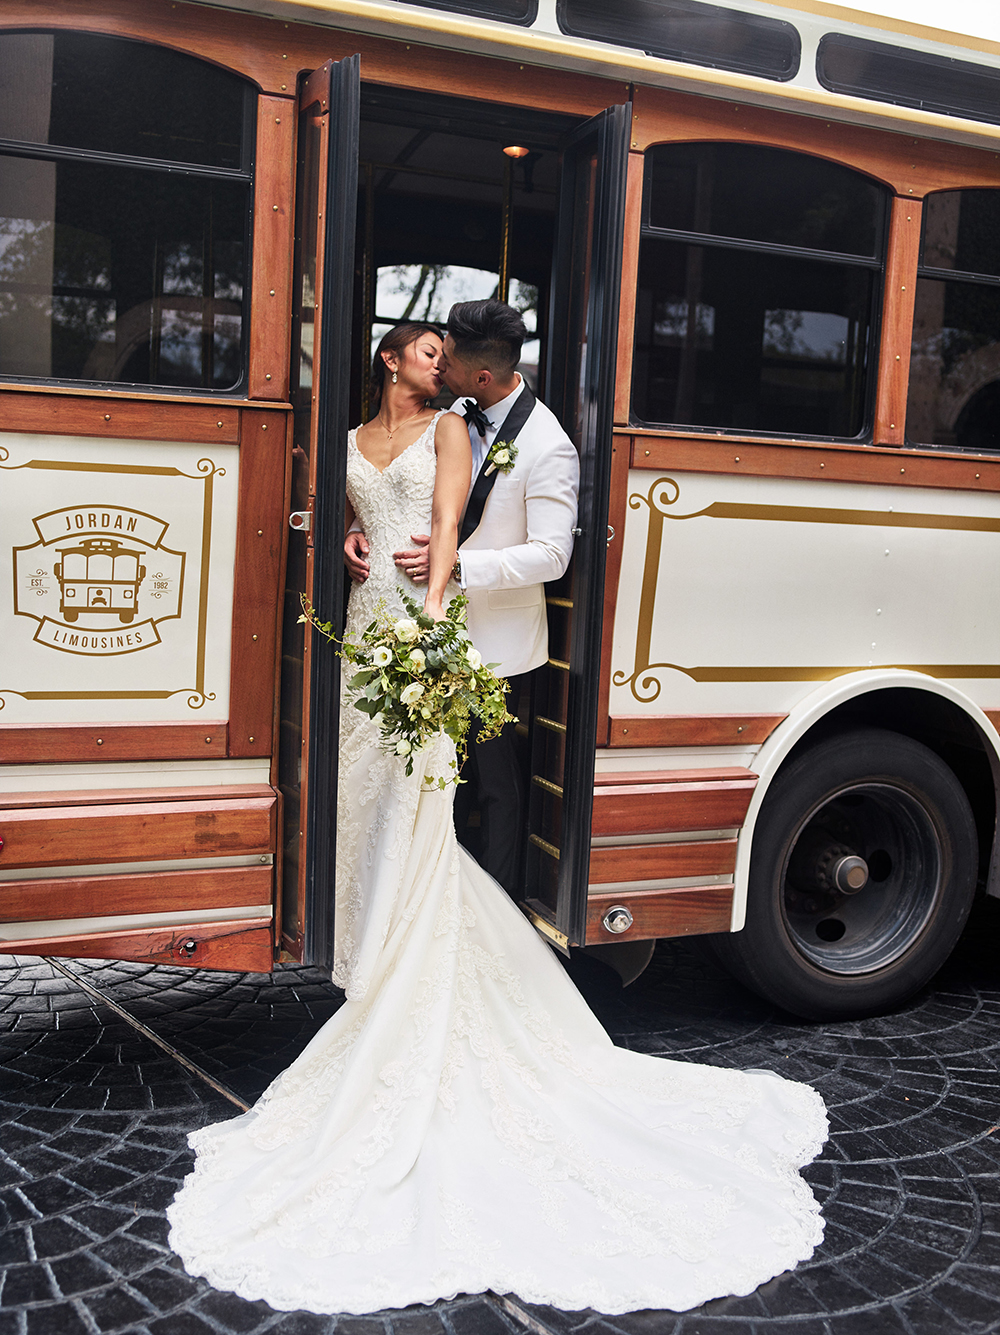 jordan limosuines - trolley photography at houston wedding